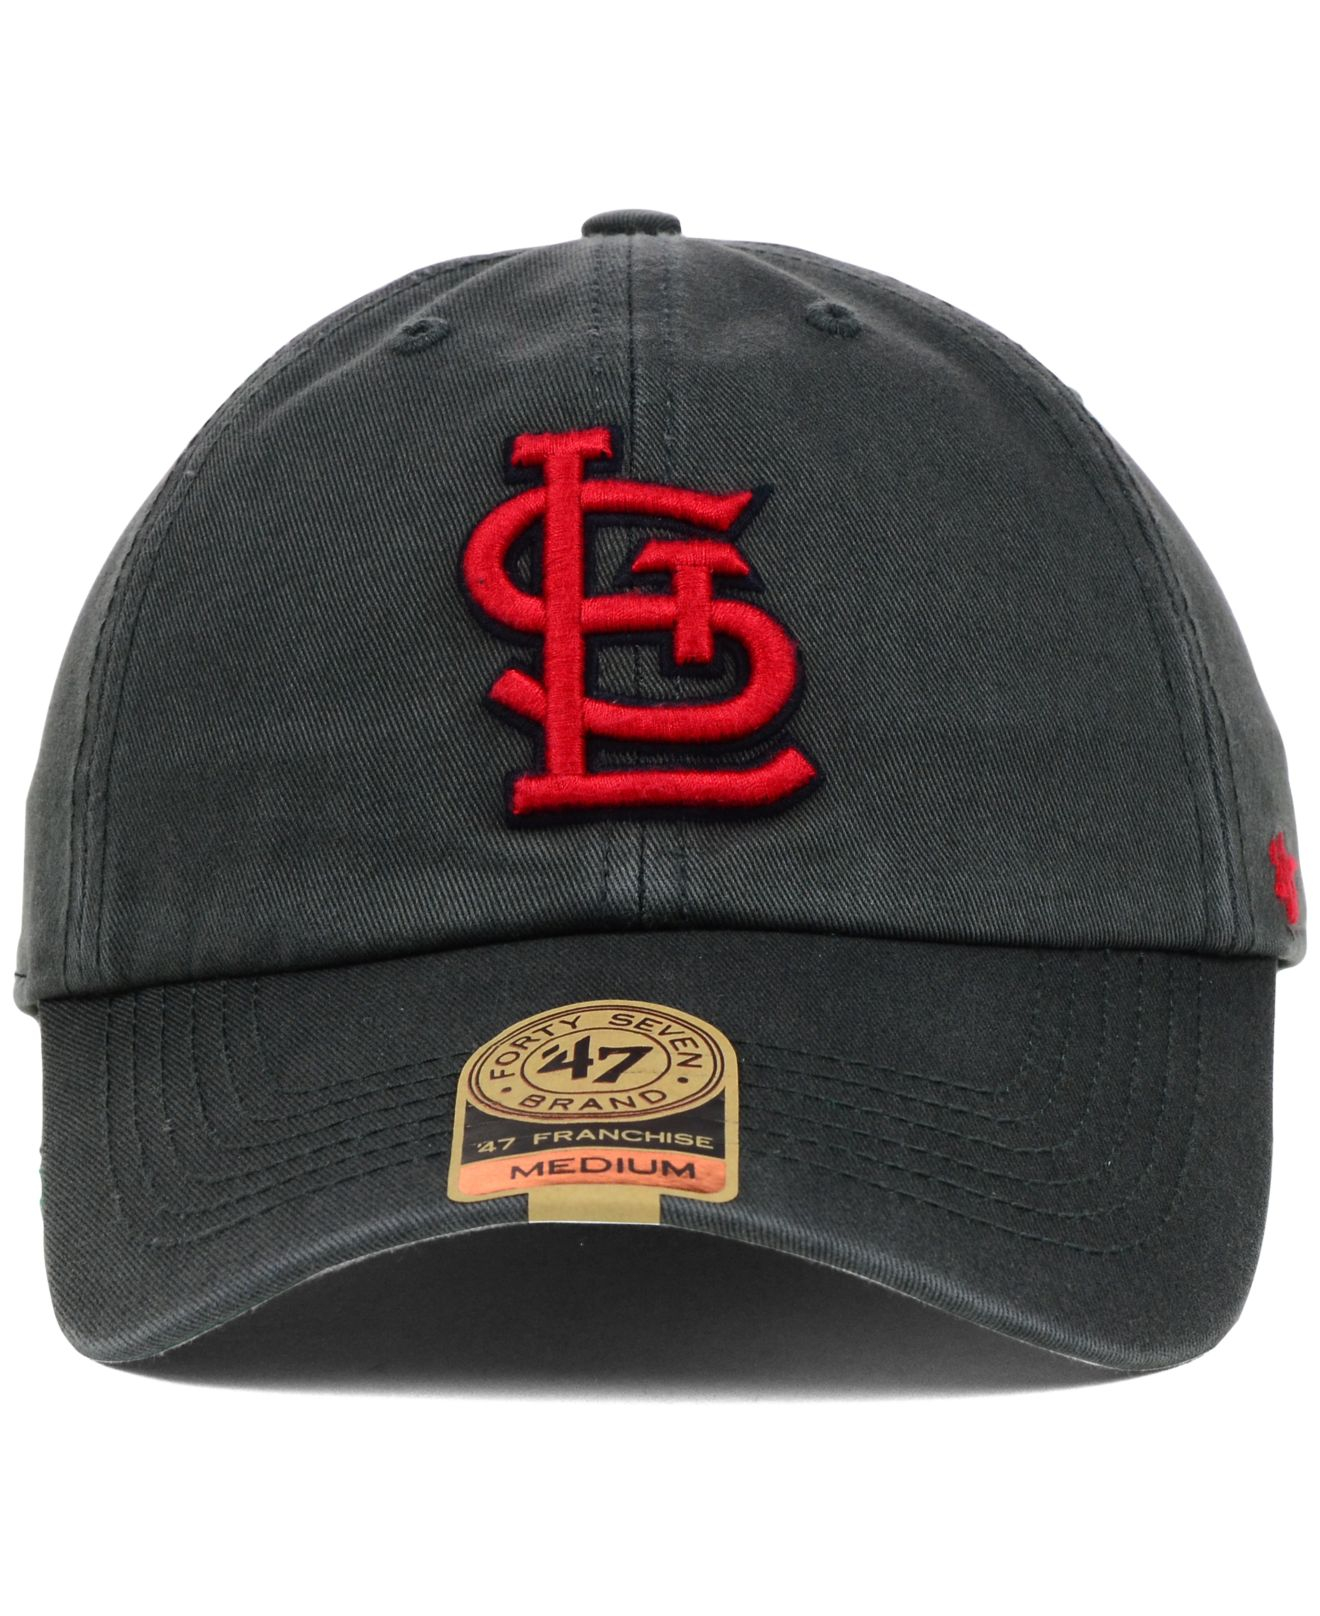 online retailer b97e9 2bb80 47 Brand St. Louis Cardinals Mlb Hot Corner Franchise Cap in Gray ...